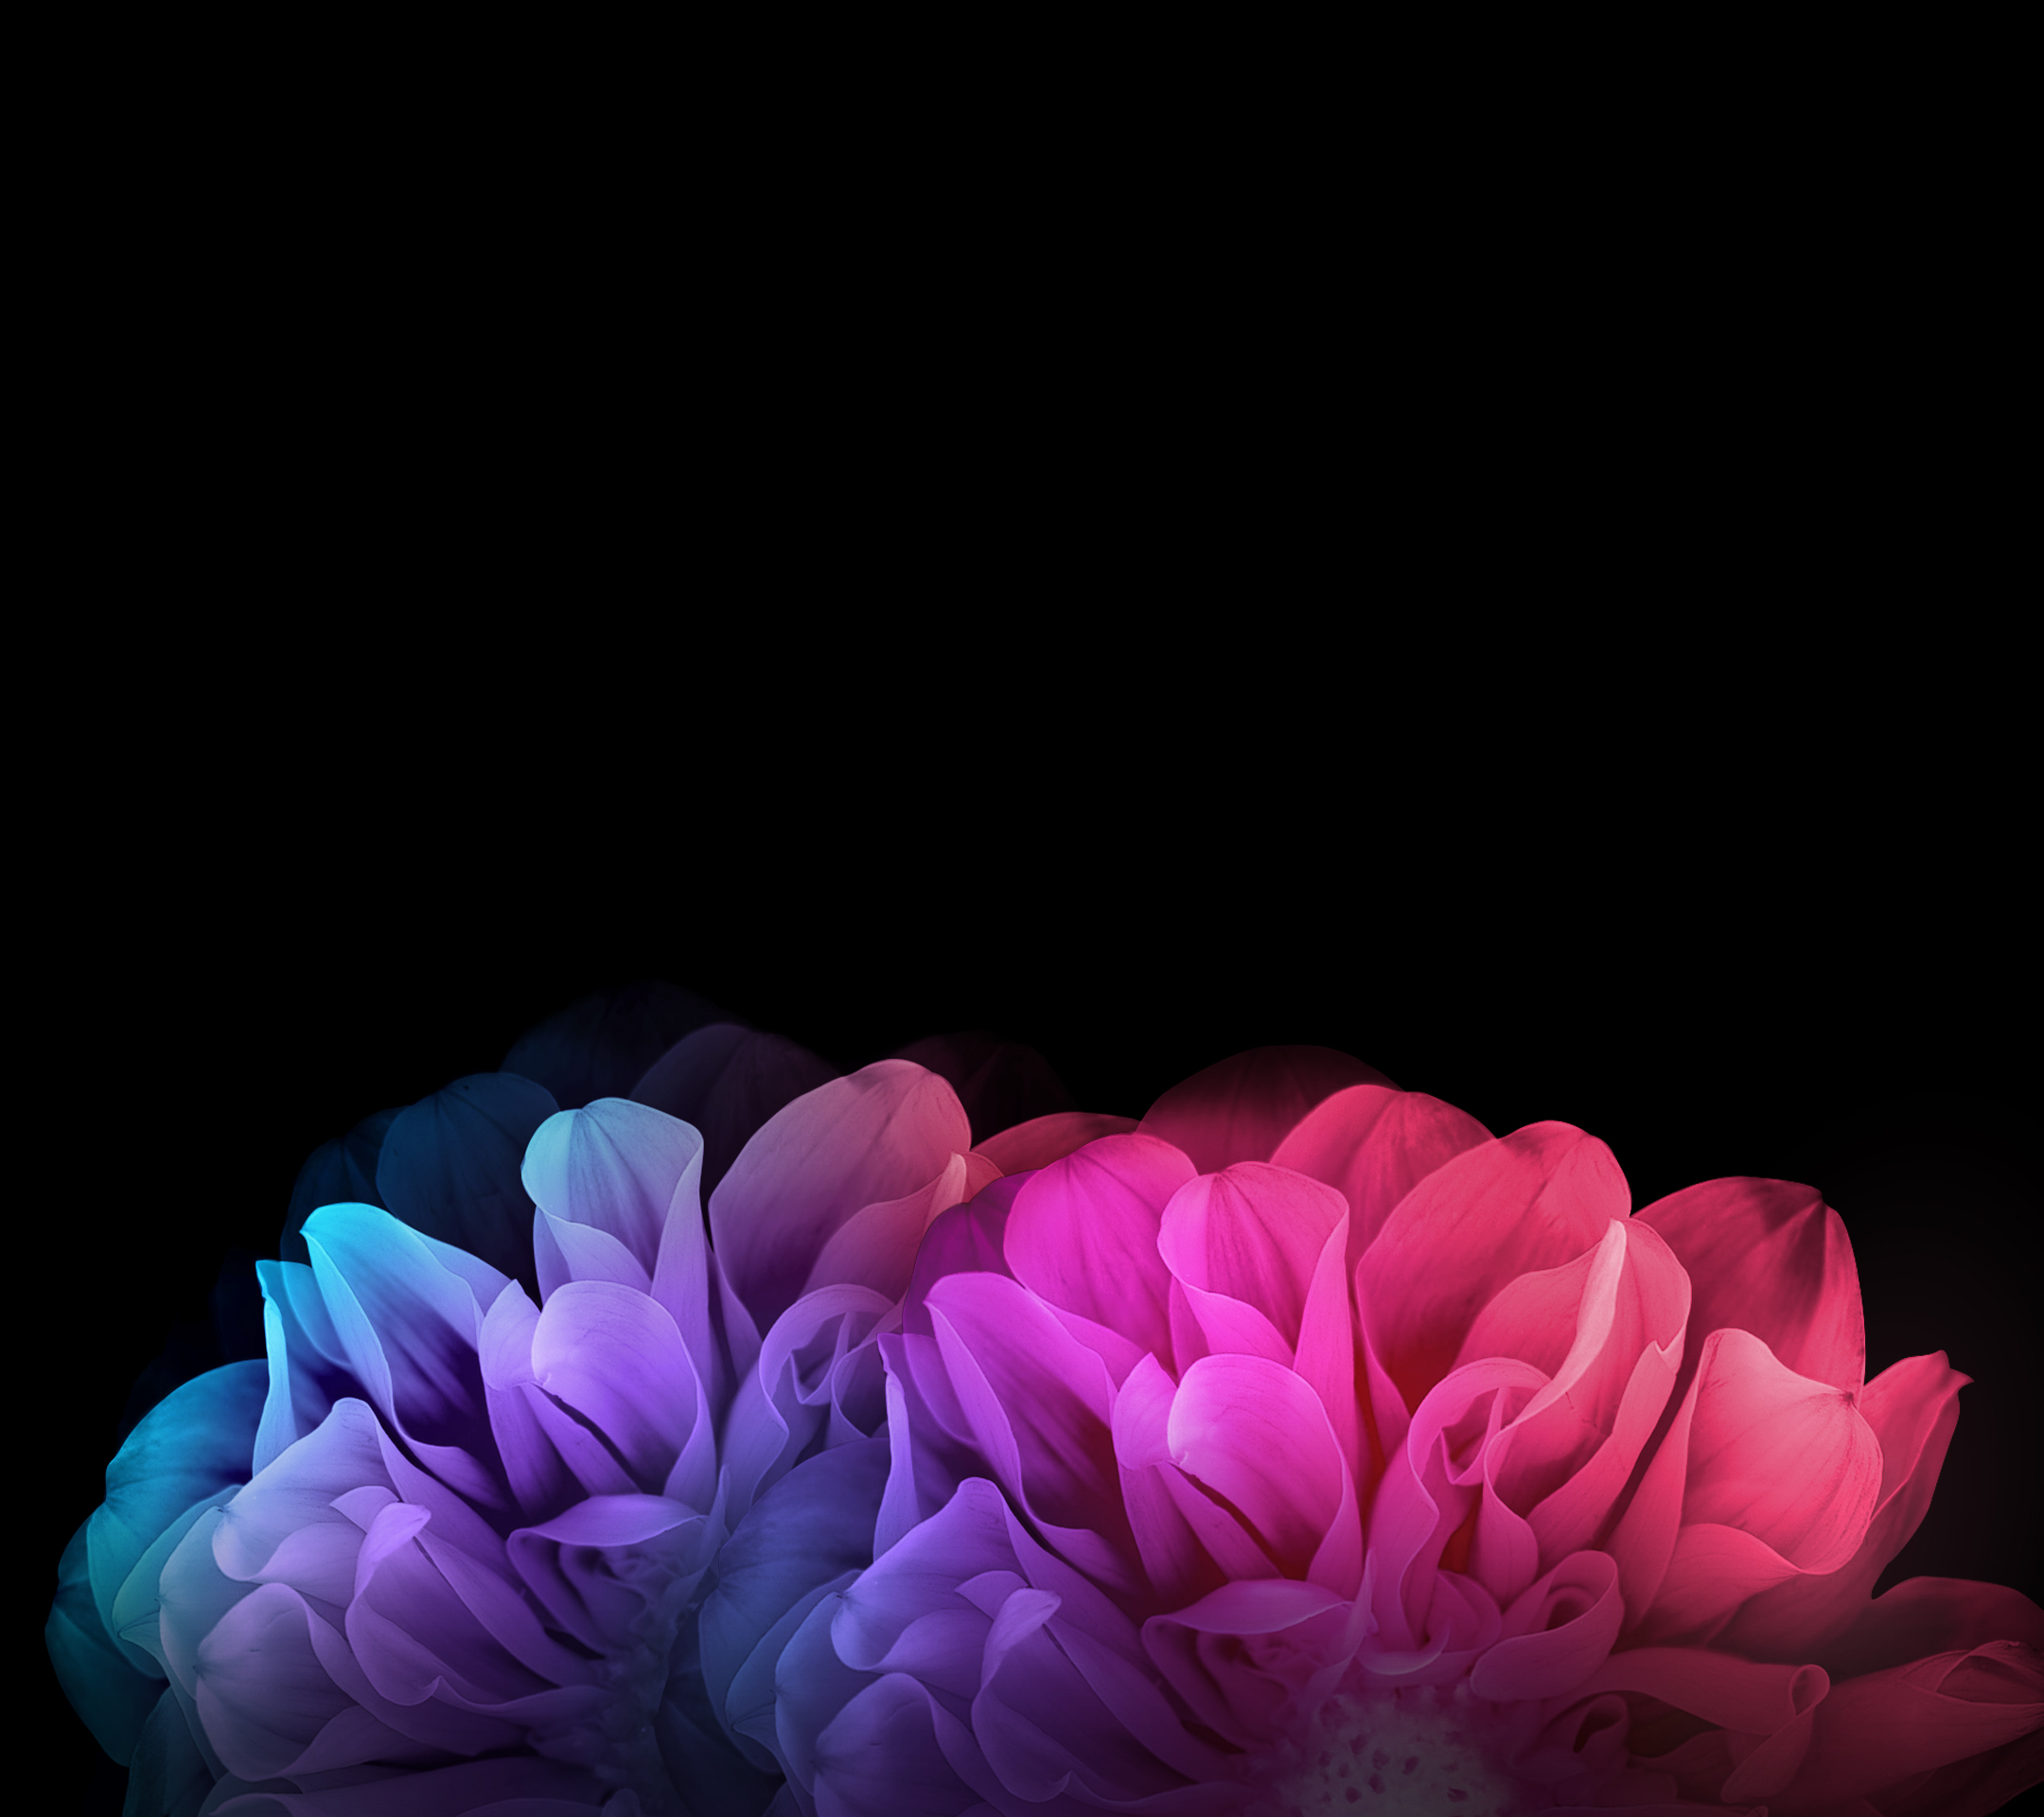 LG-G-Flex-2-full-res-wallpapers (2)